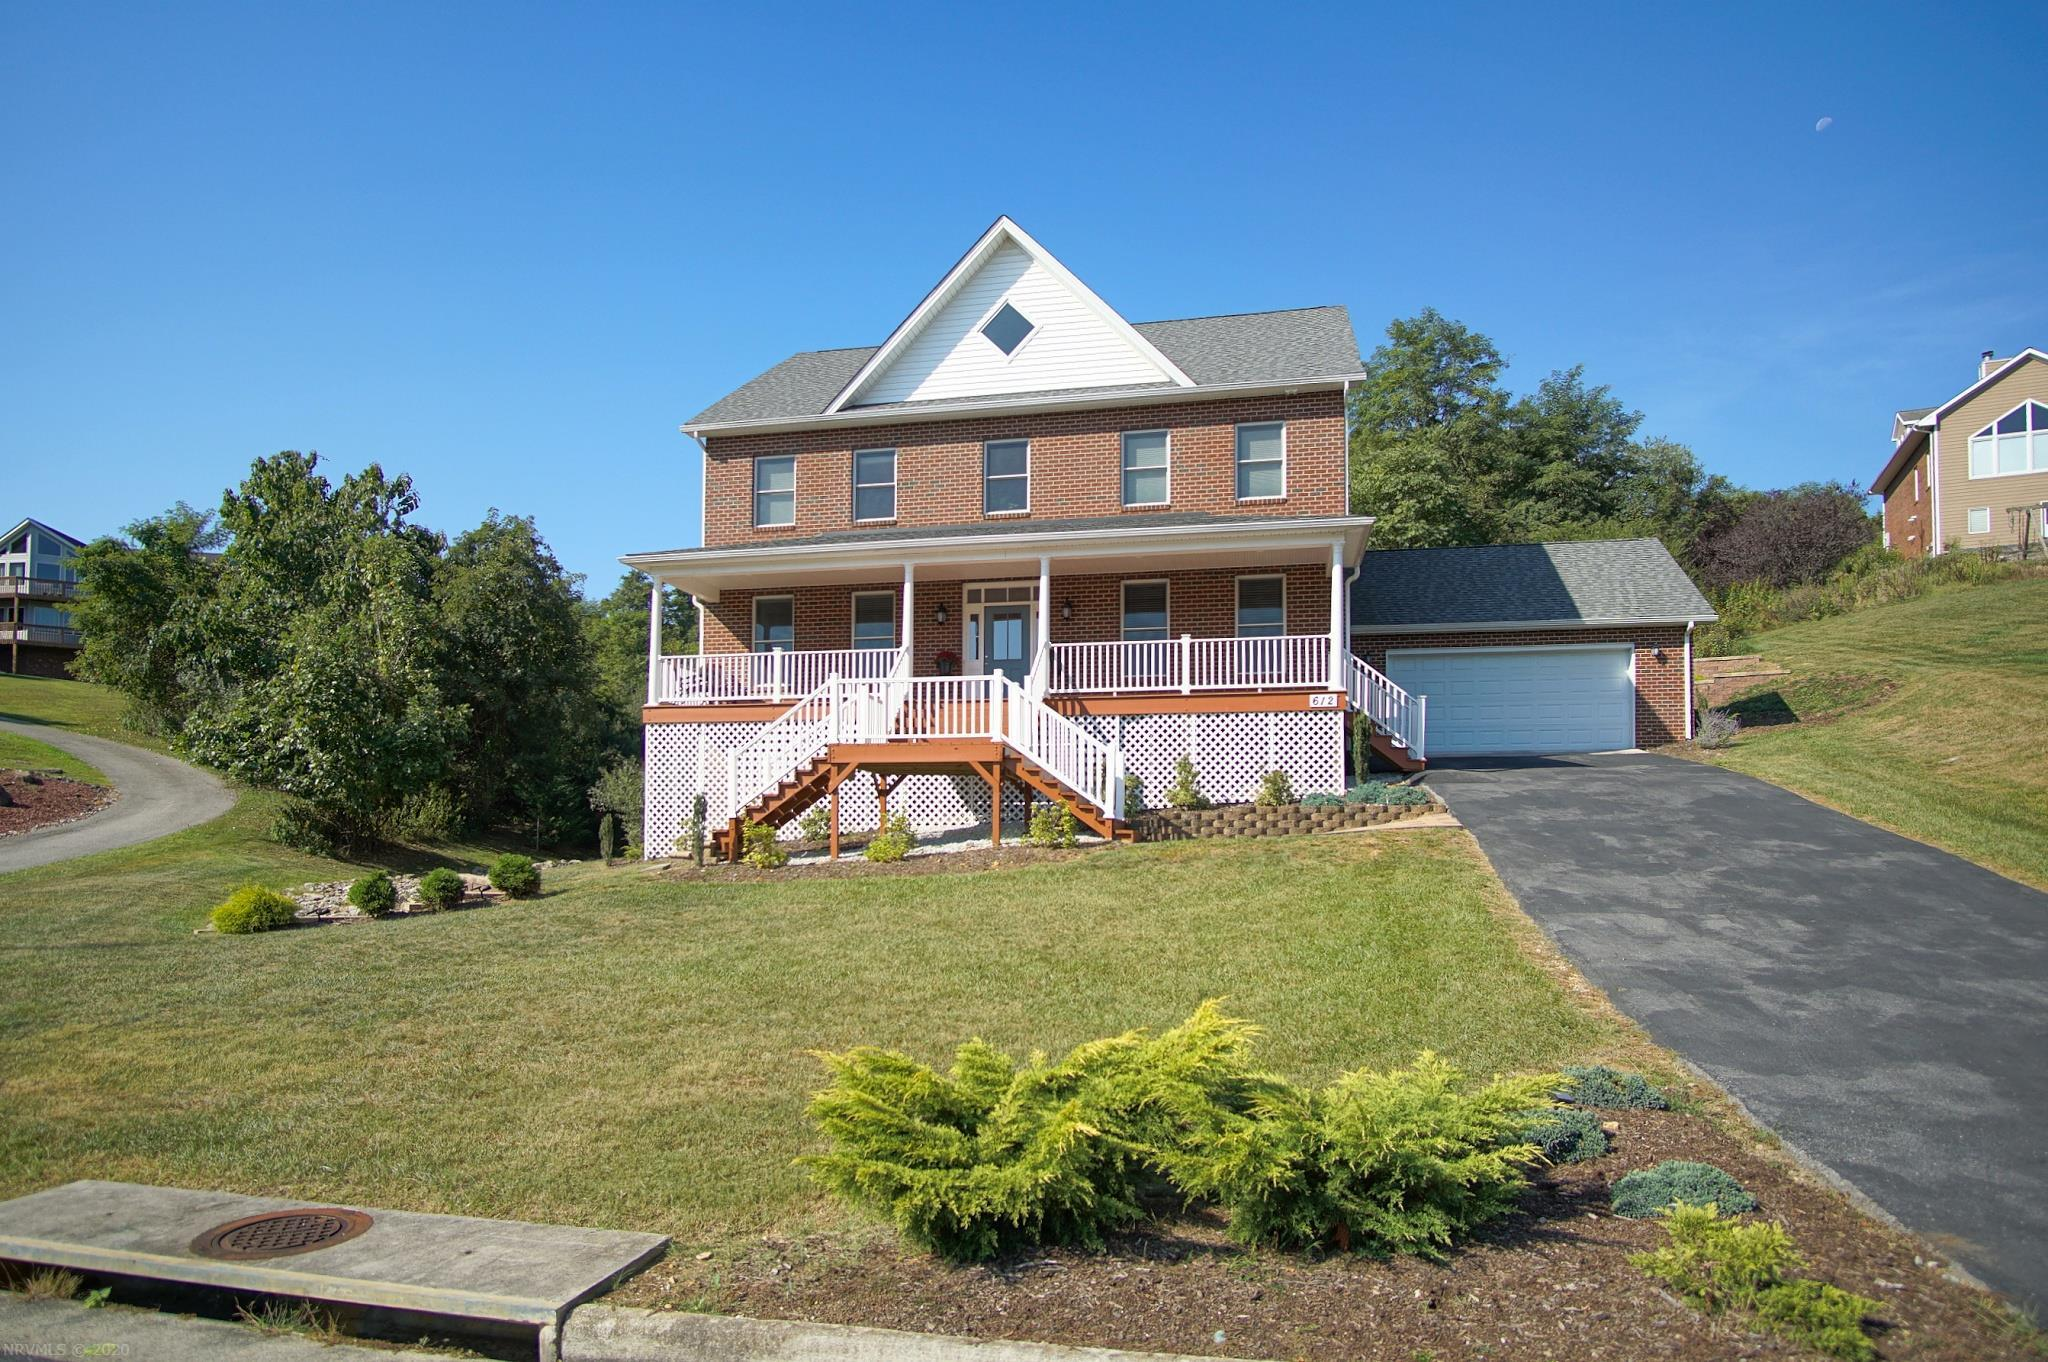 """Bright and spacious four level brick home in one of Blacksburg's most popular neighborhoods.  With 7 bedrooms and 5.5 bathrooms this home has room for everyone and is perfect for entertaining and has ample """"away"""" space.  The main level welcomes you with beautiful red oak flooring and large kitchen that opens into the family room and includes a formal living room and separate dining room and wet bar.  The next level up has 4 bedrooms and two bathrooms including a well appointed master suite.  The upper most level is bathed in sunlight and has a dynamic floor plan that can be a combination of rec/office/bedrooms with yet another full bath.  The finished basement has a huge rec/game room large enough for table tennis/billiards with room to spare, as well as another bedroom/office, and another large flex space perfect for craft or exercise room.  The exterior has been professionally hardscaped and landscaped.  There is nothing missing in this extraordinary home!"""